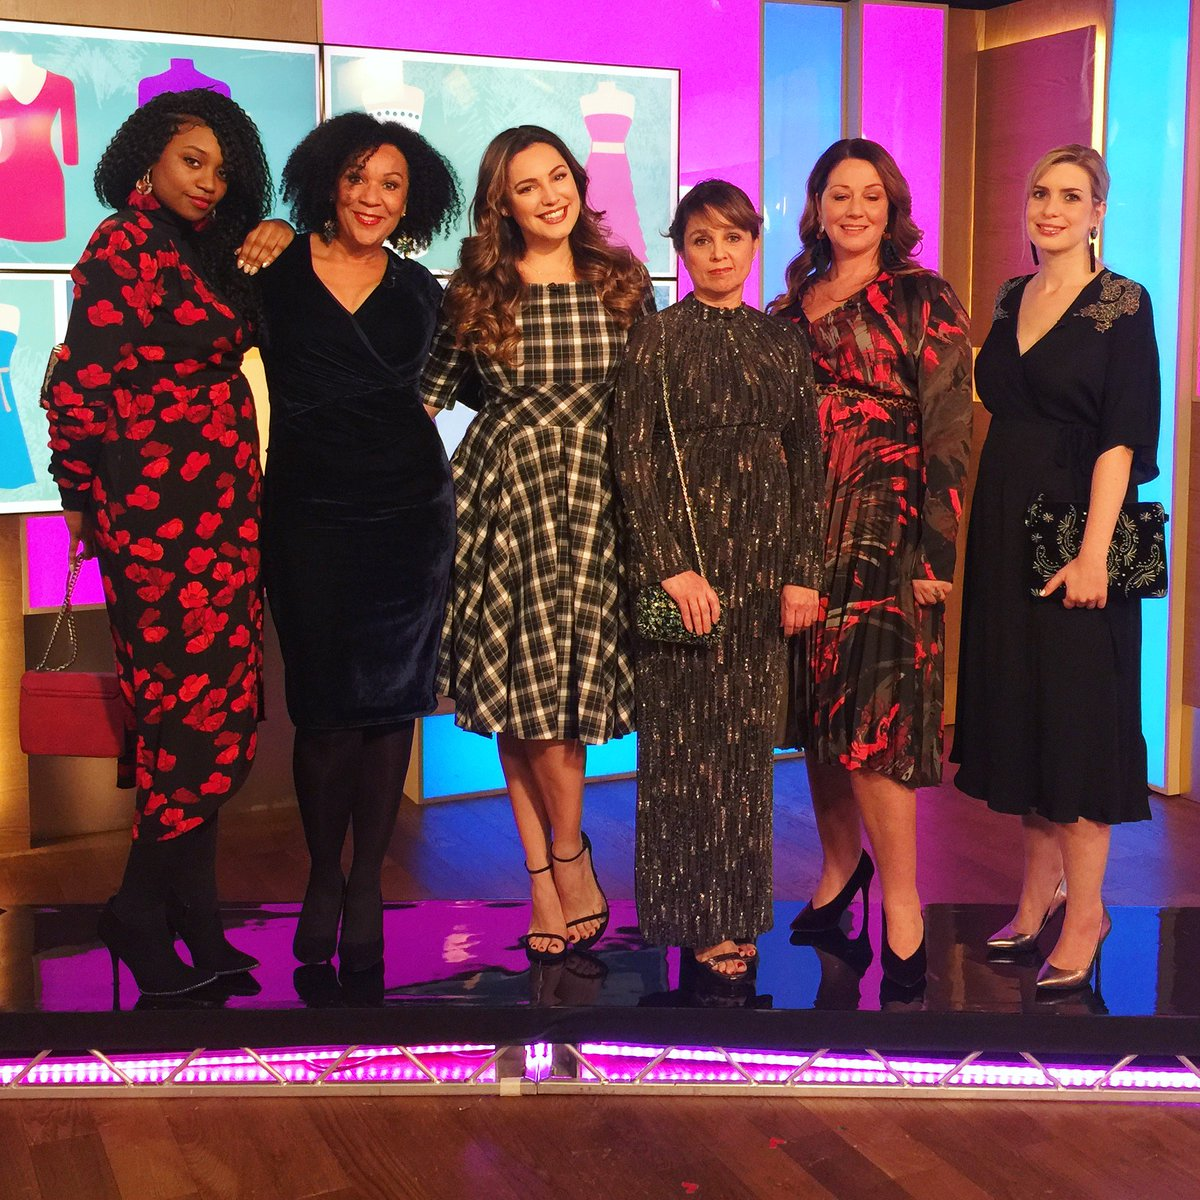 RT @thismorning: Say YES to a winter dress! @IAMKELLYBROOK ???? https://t.co/7XQc7Re9tG https://t.co/H2q0TA5y1L